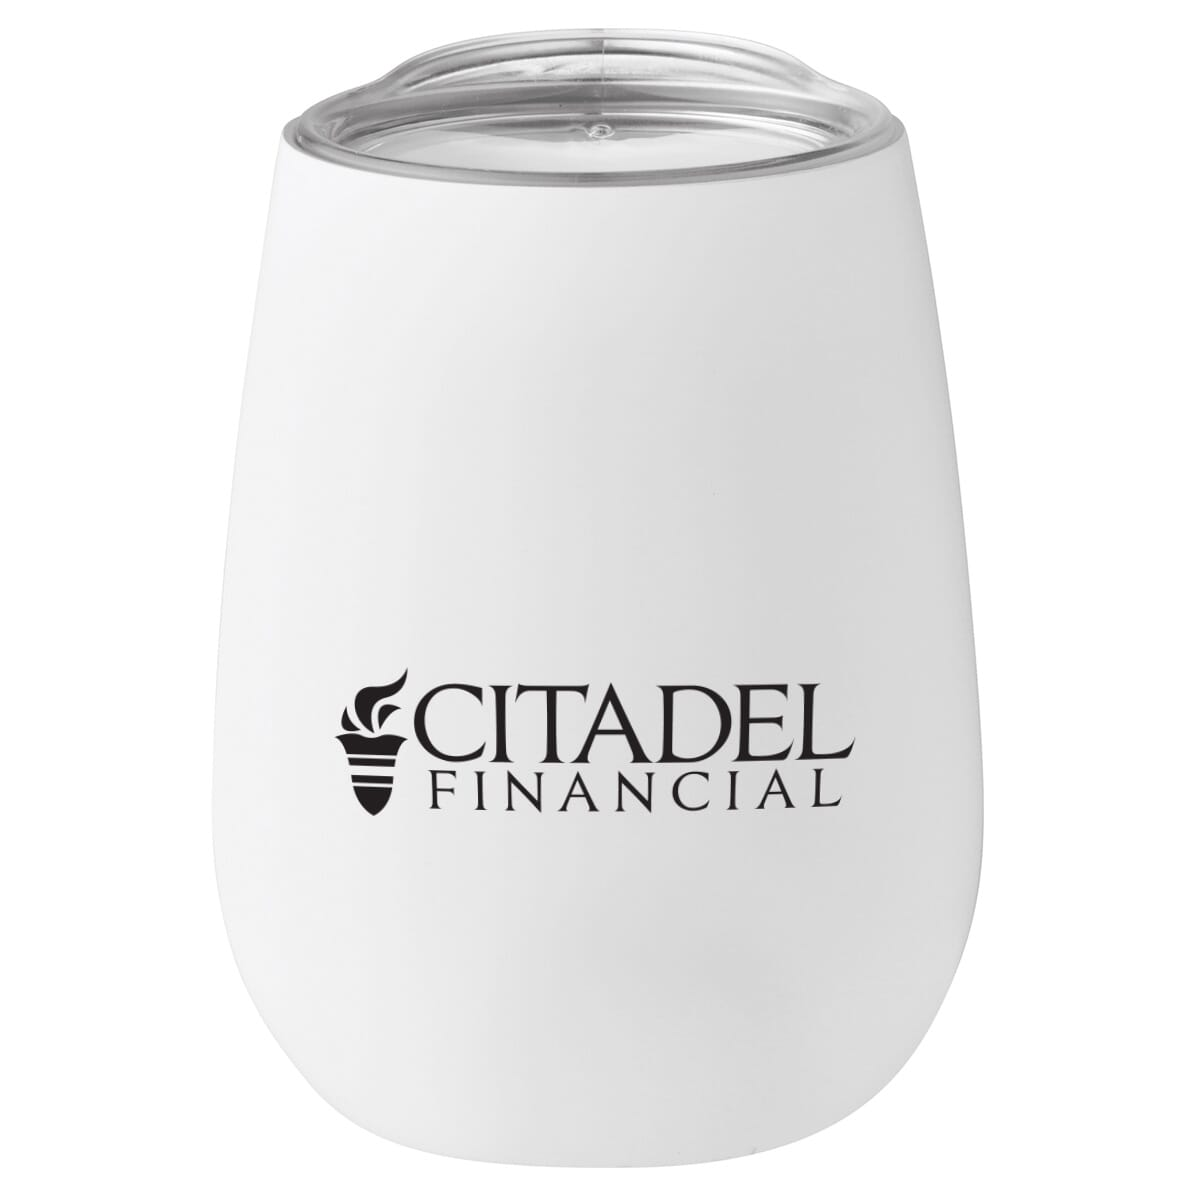 Insulated tumbler for wine or coffee